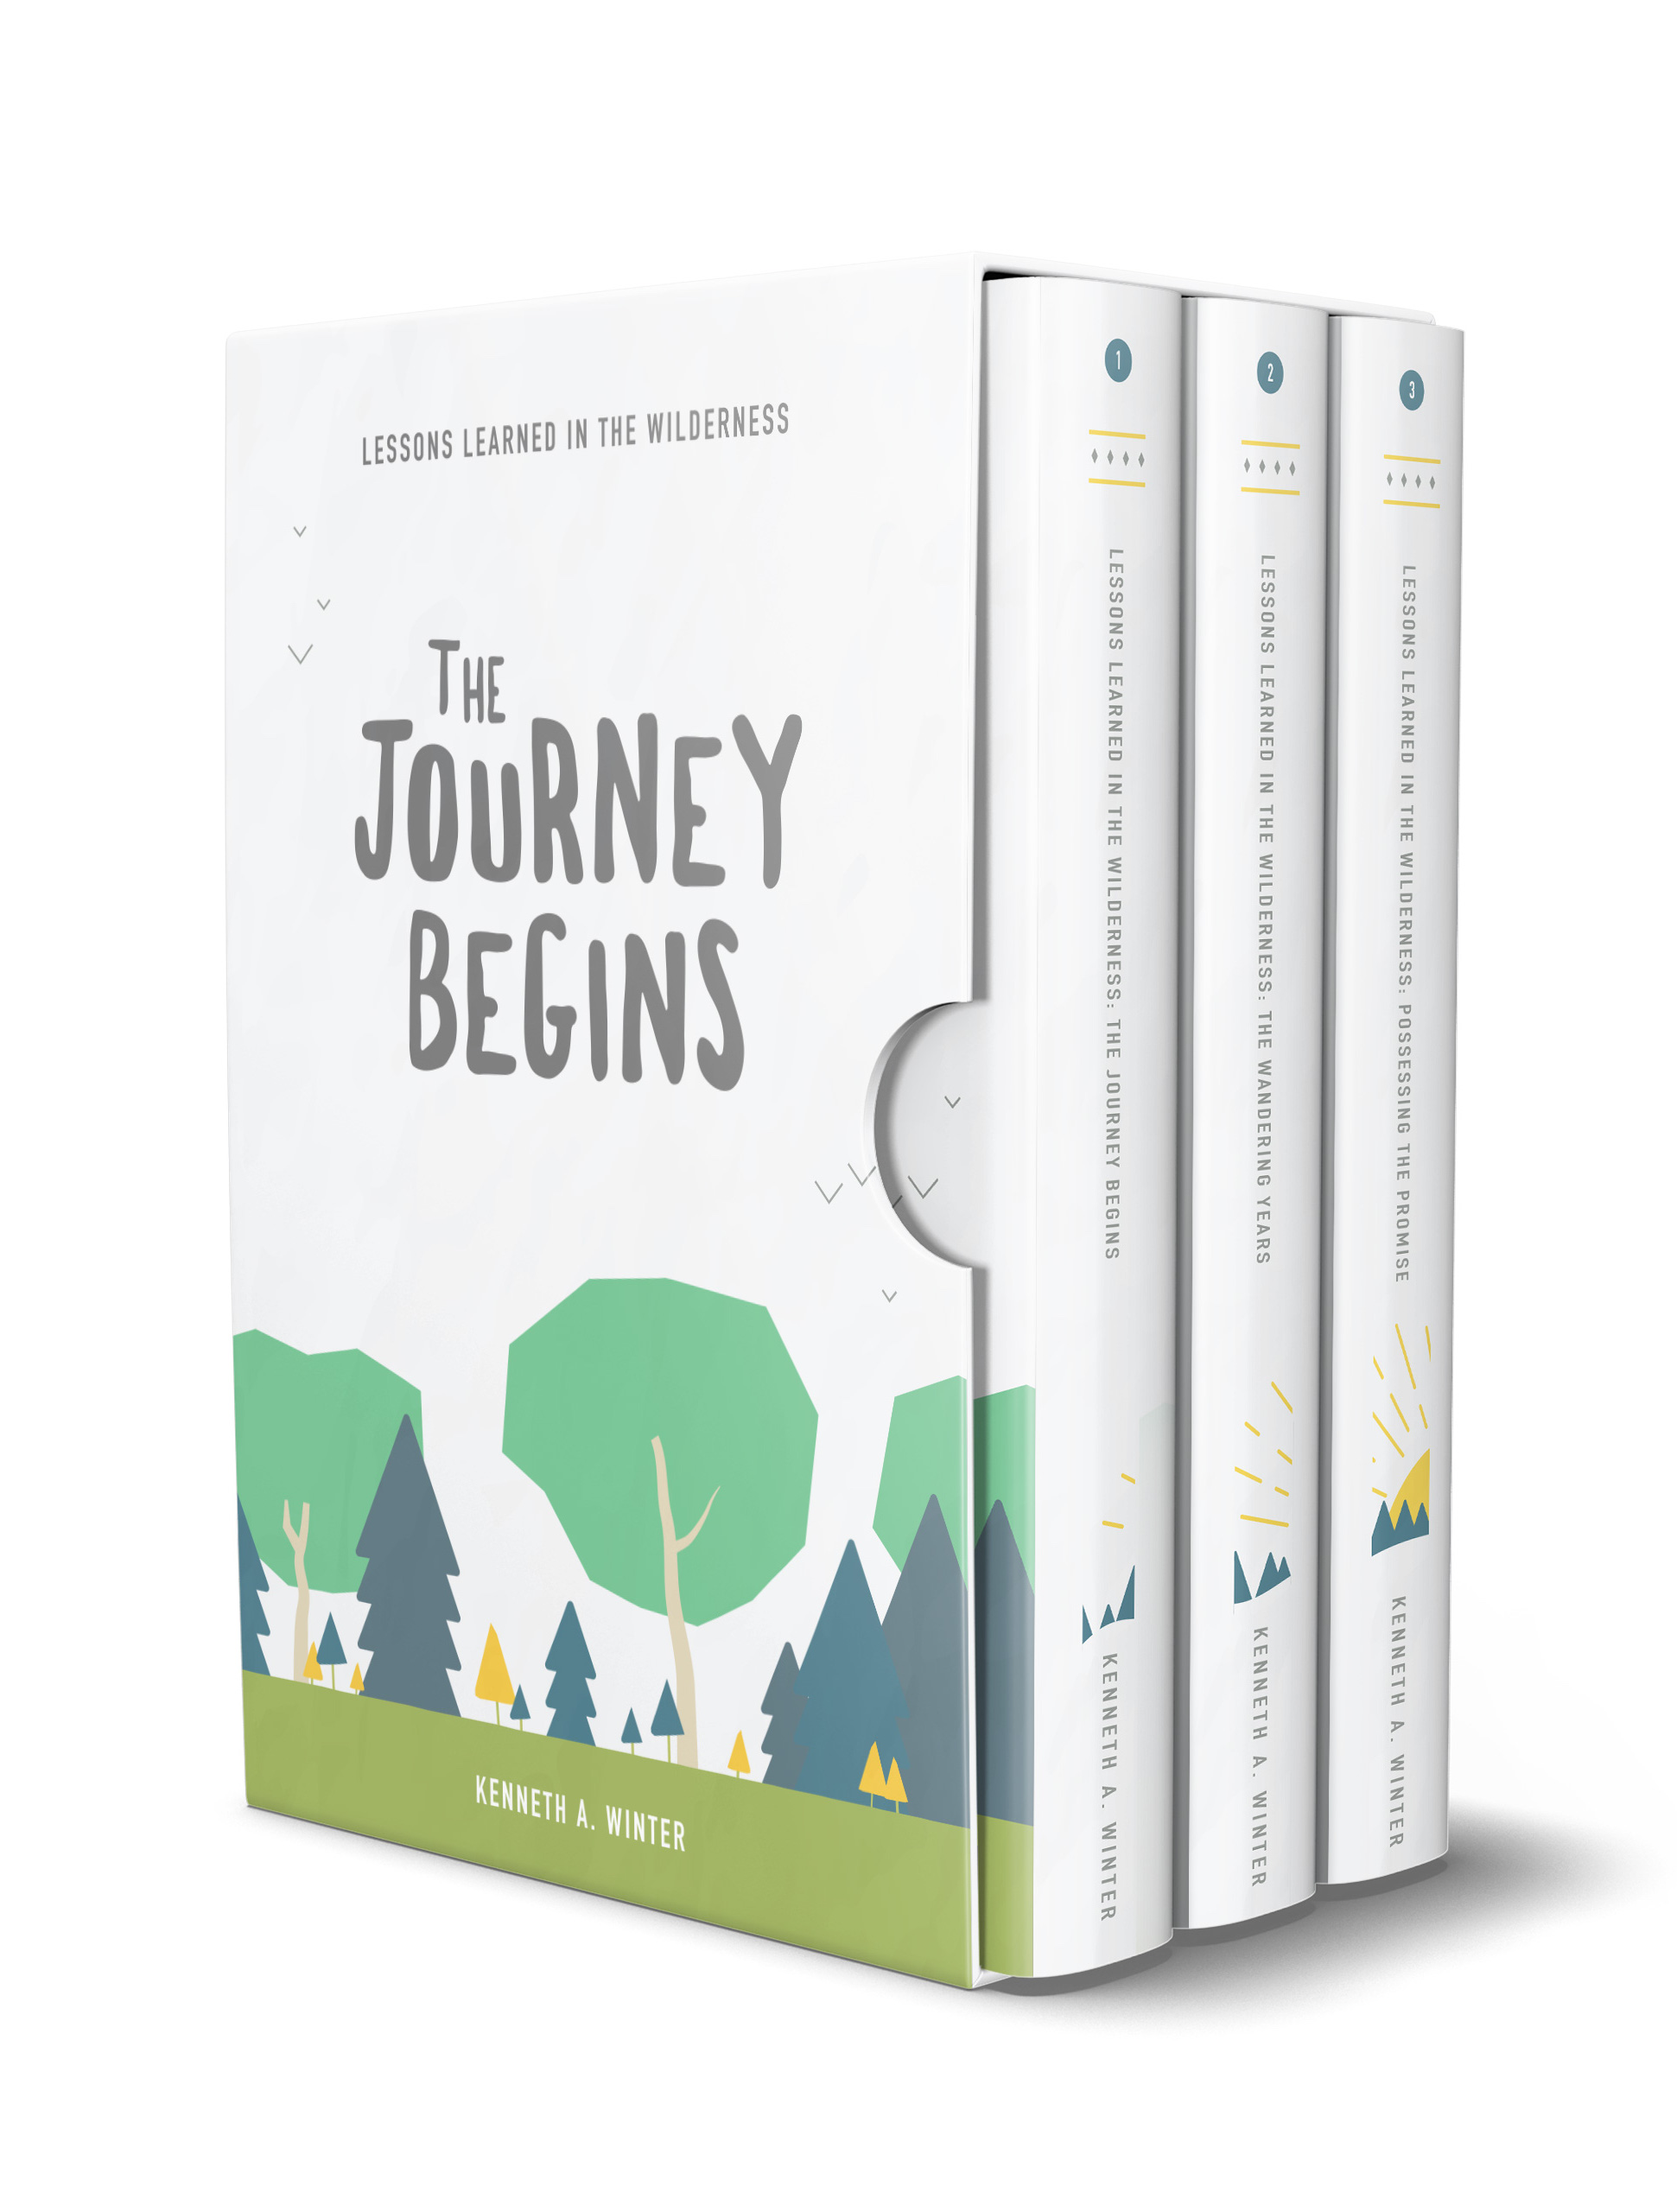 Books 1-3 Now Available As A Boxset - The first three books in the Lessons Learned In The Wilderness series are also available as a collection in a single print volume or an e-book boxset at a significant savings through Amazon.